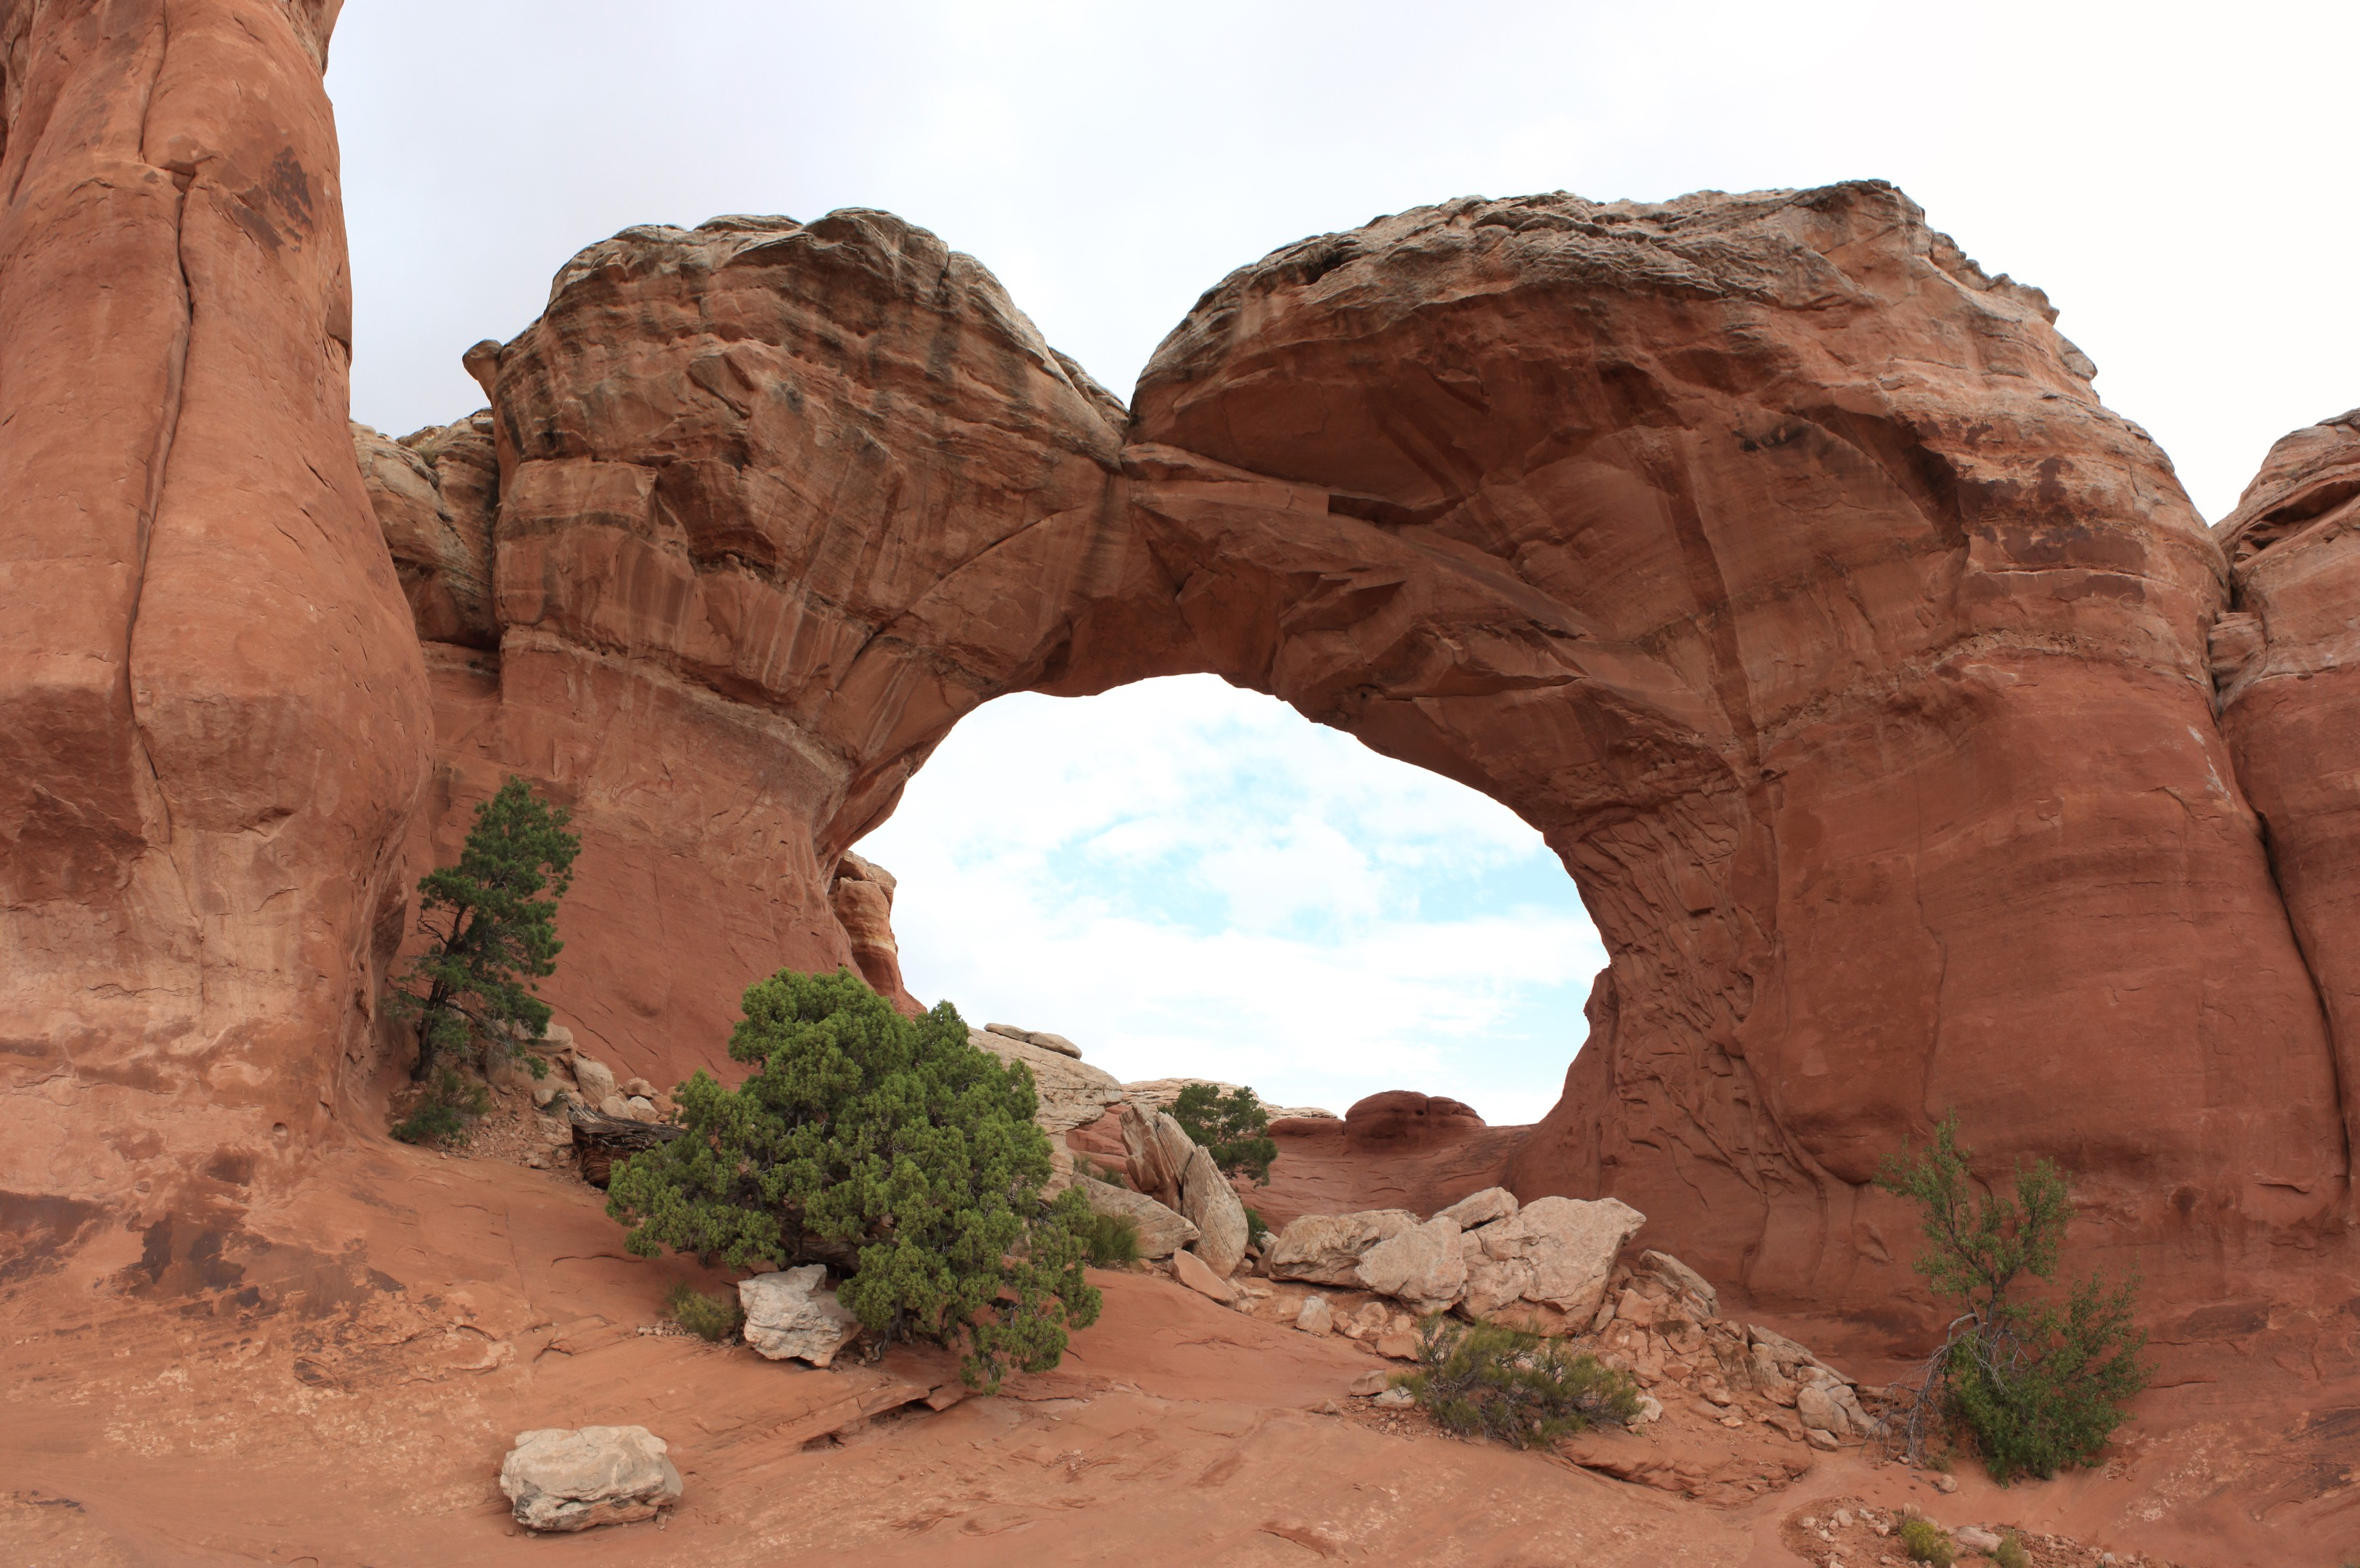 The Broken Arch. Note the broken parts on the ground and the obvious cleft centre left of the arch. The trail to the arch actually passes through the arch itself on the way to the campground (closed in 2017)